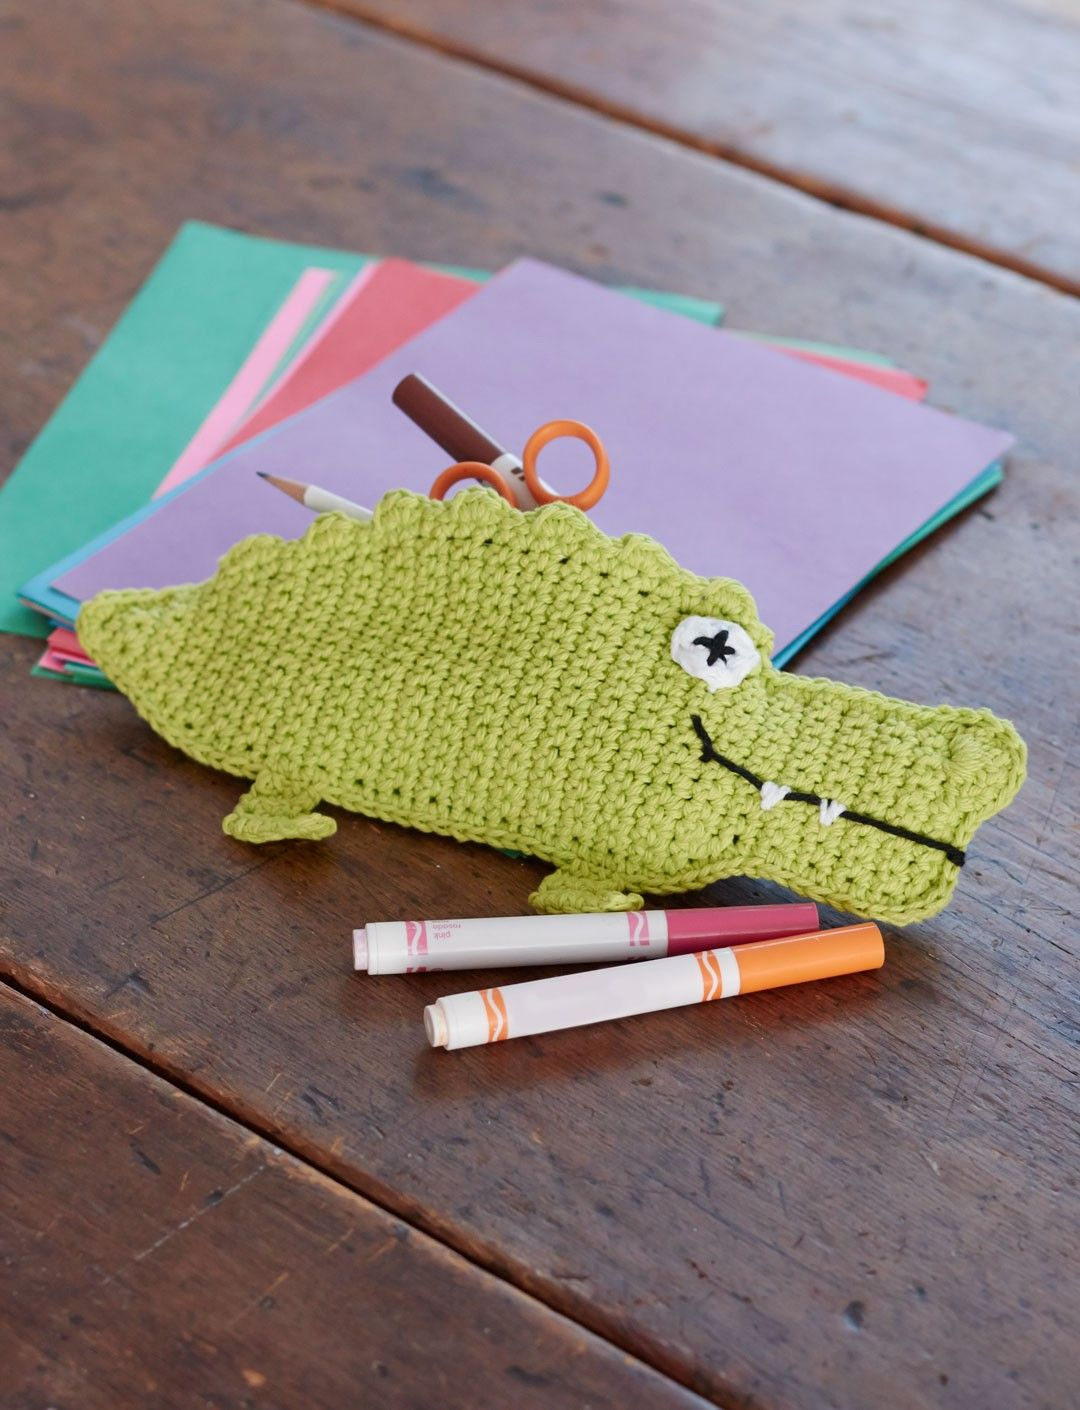 Diy alligator pencil case crochet craft diy pinterest alligator pencil case x free crochet pattern theyll love going back to school with this fellow bankloansurffo Choice Image